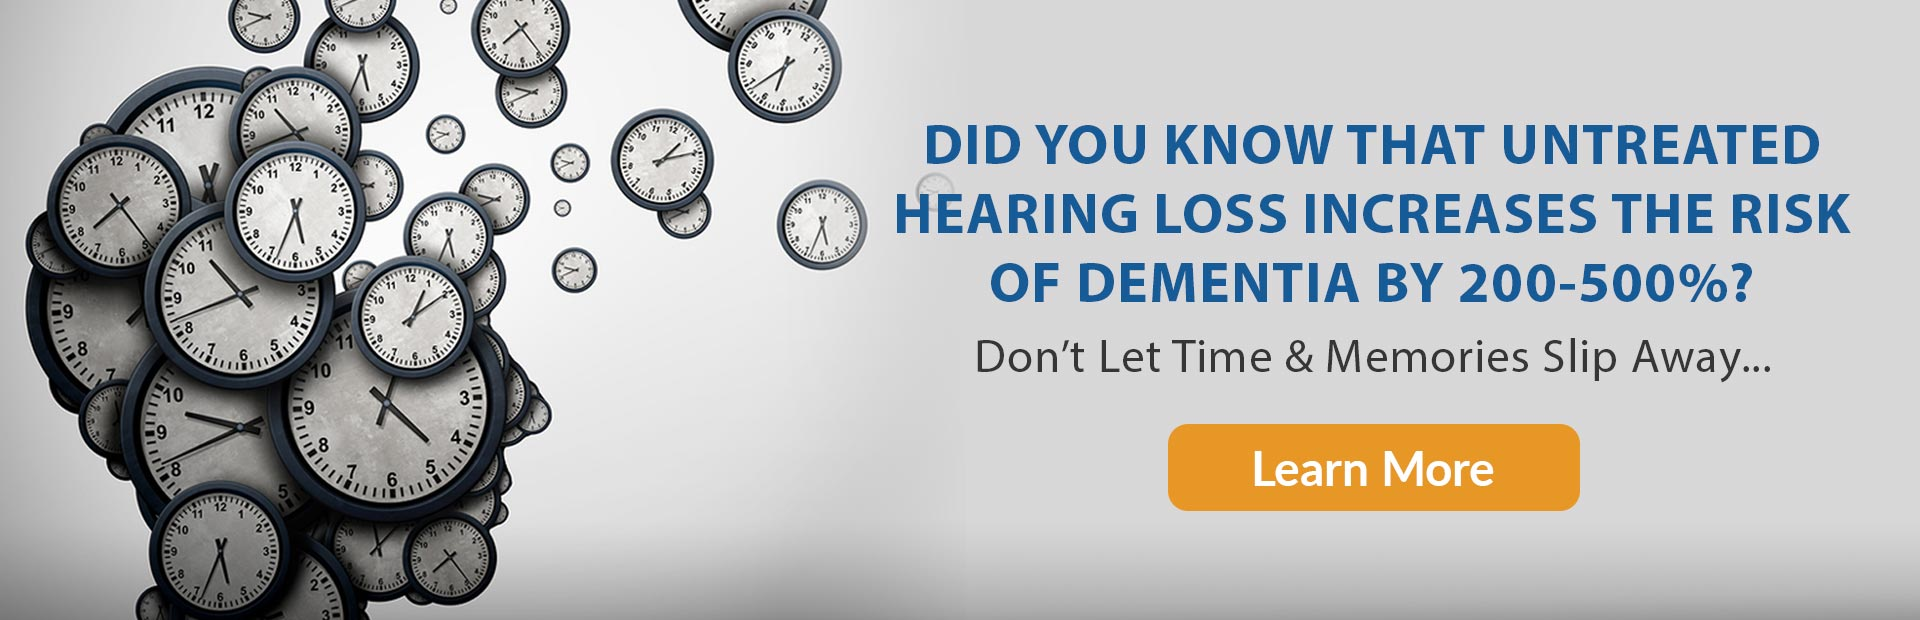 learn more hearing loss and dementia